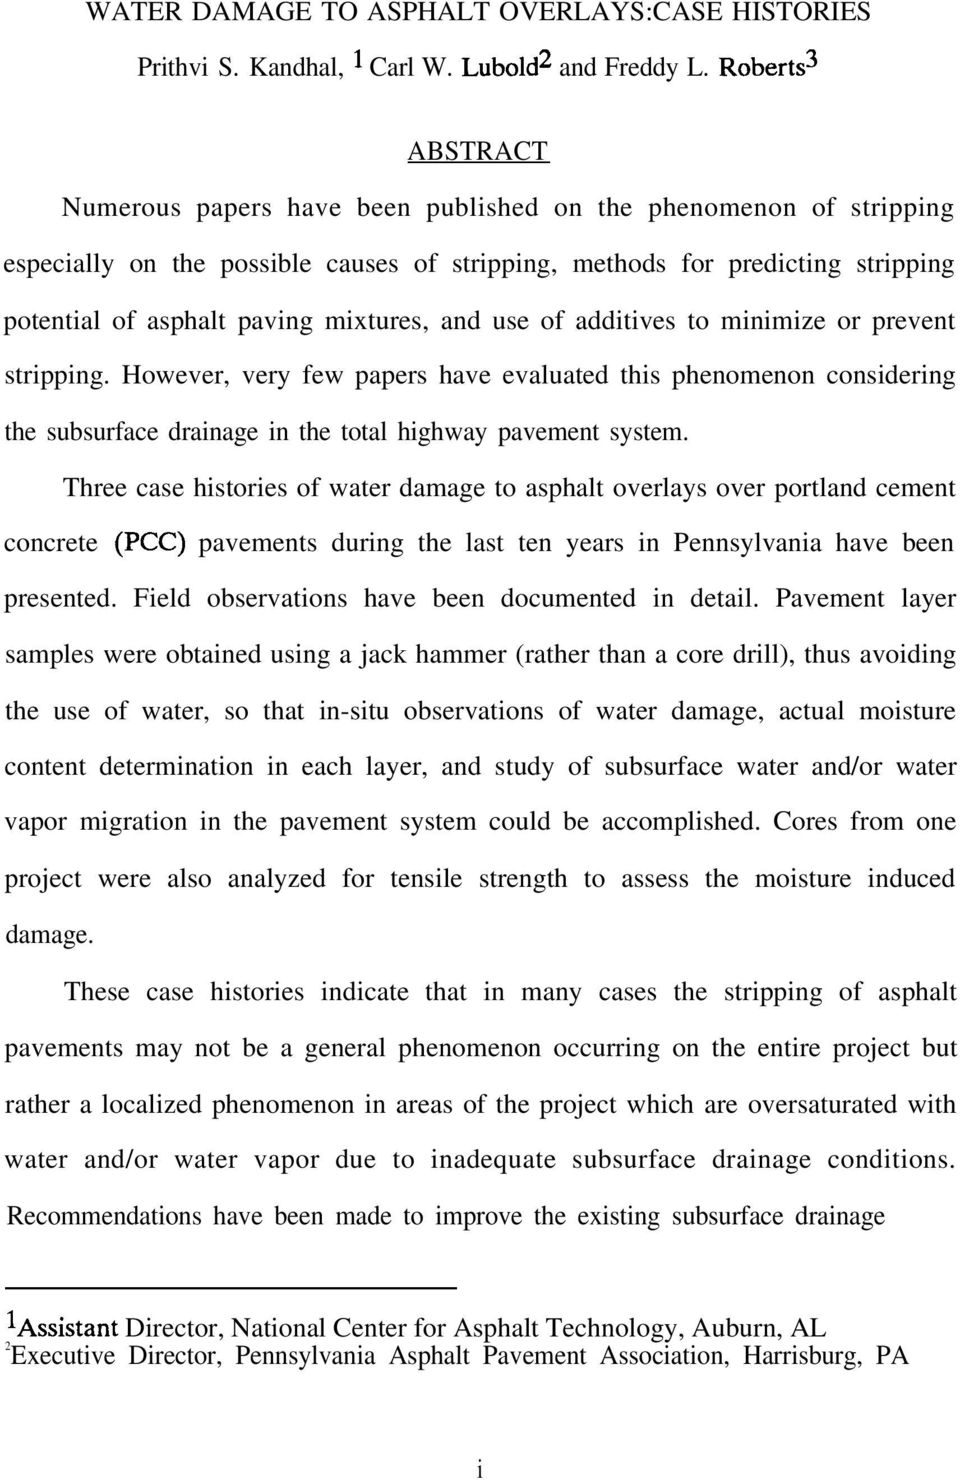 mixtures, and use of additives to minimize or prevent stripping. However, very few papers have evaluated this phenomenon considering the subsurface drainage in the total highway pavement system.